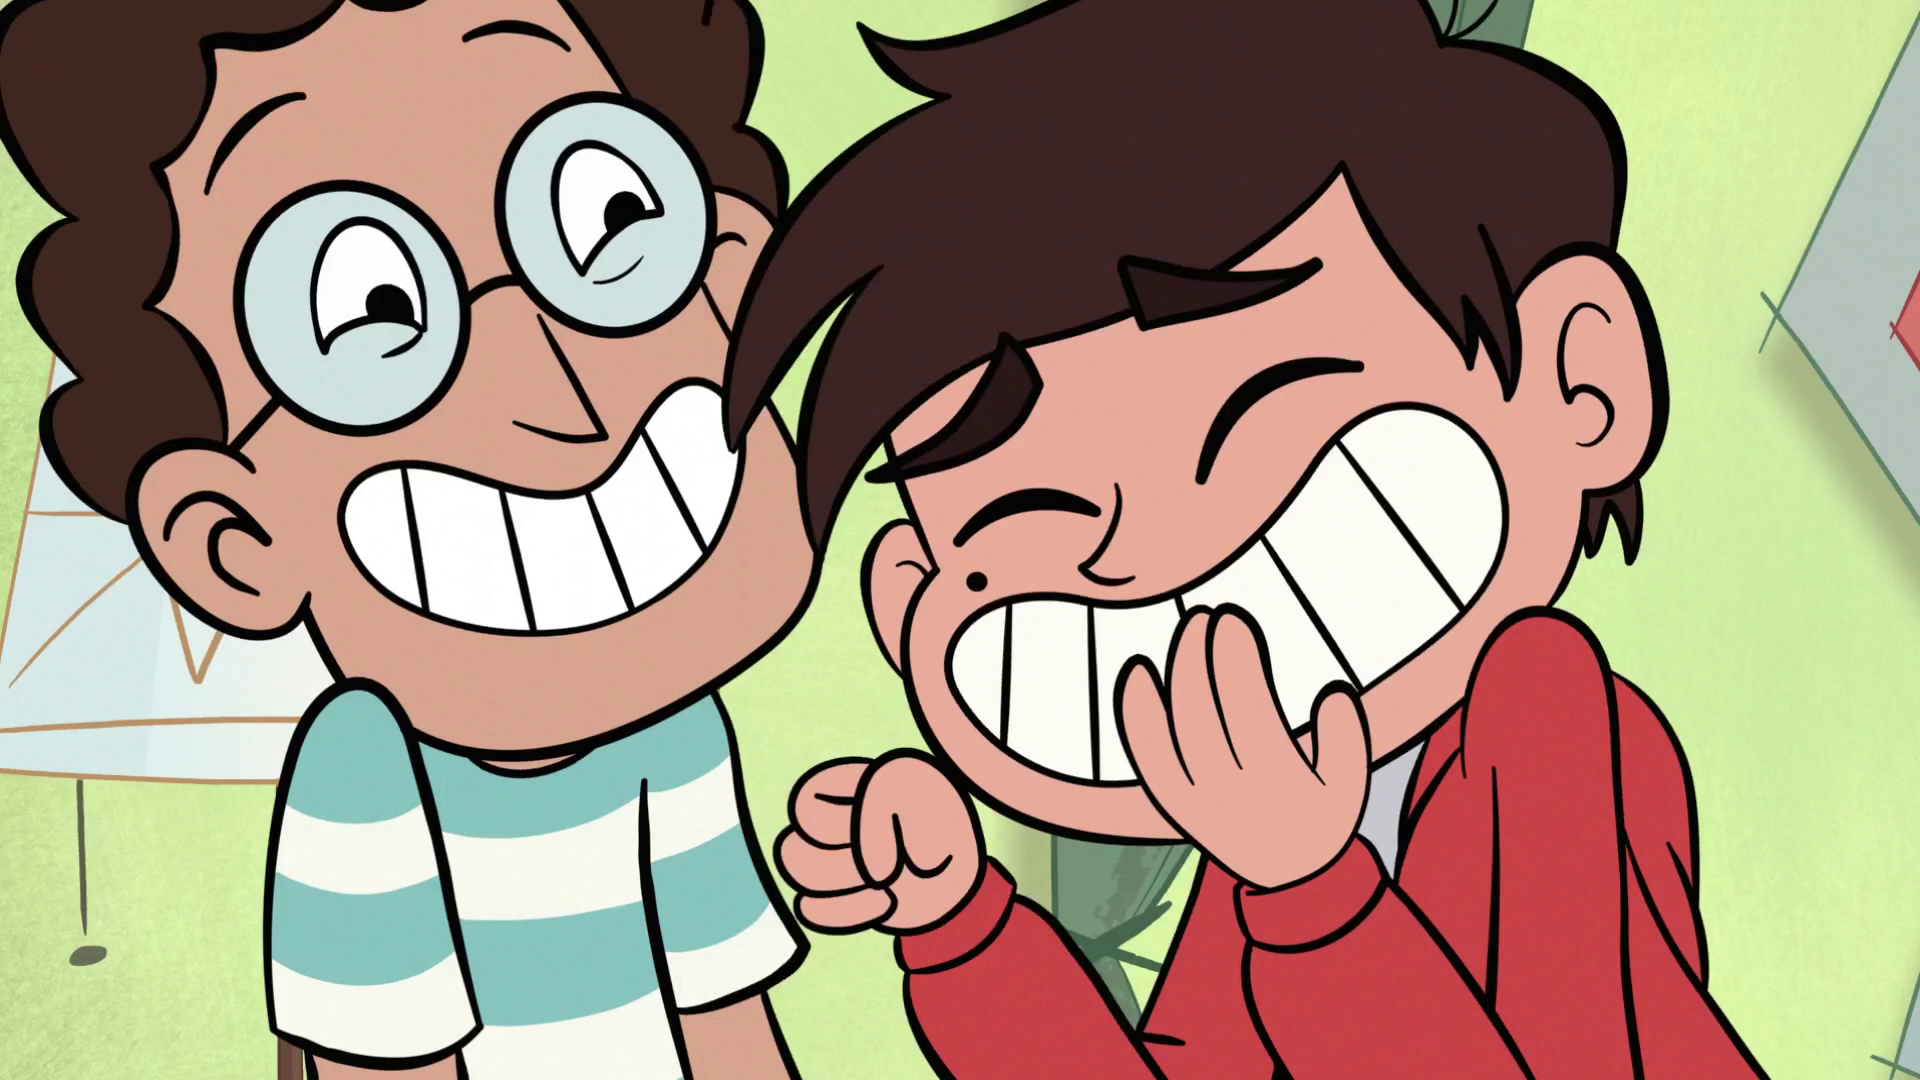 S1E12 Marco and Alfonzo laughing.png - Laughing PNG HD